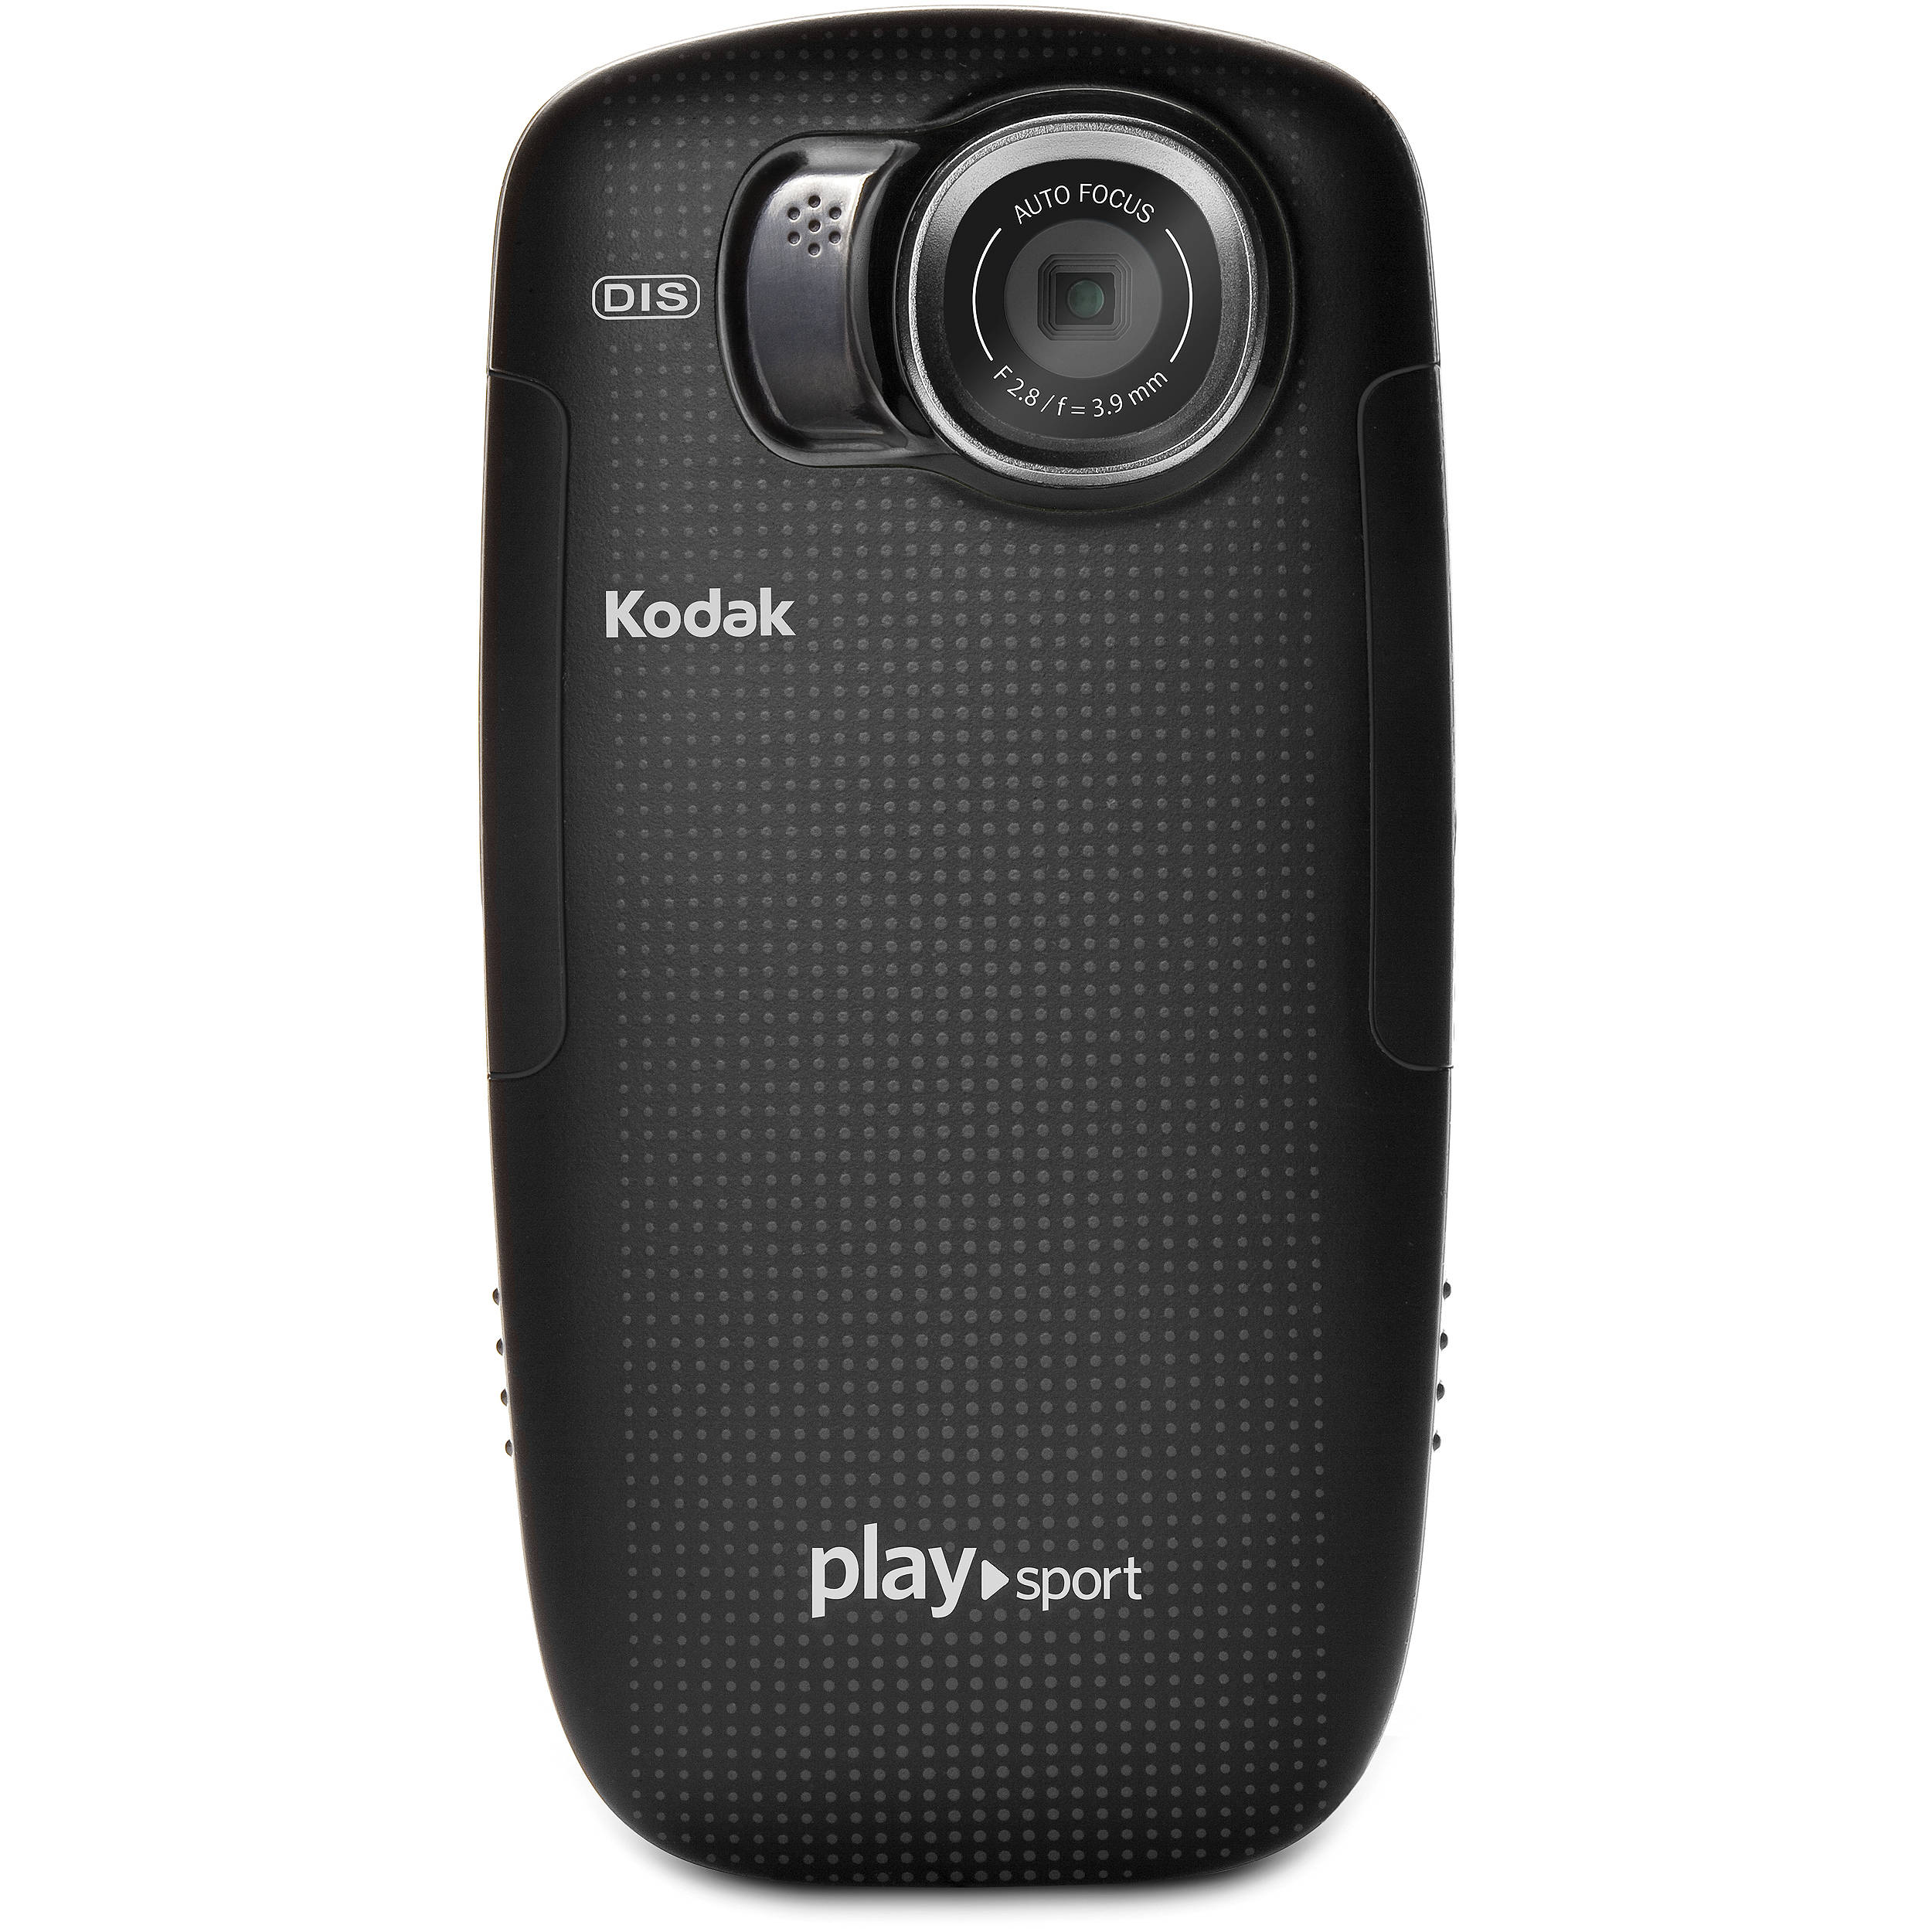 kodak playsport zx5 video camera black 1515246 b h photo video rh bhphotovideo com kodak playsport (zx3) hd waterproof pocket video camera user manual Kodak PlaySport Camera or Similar